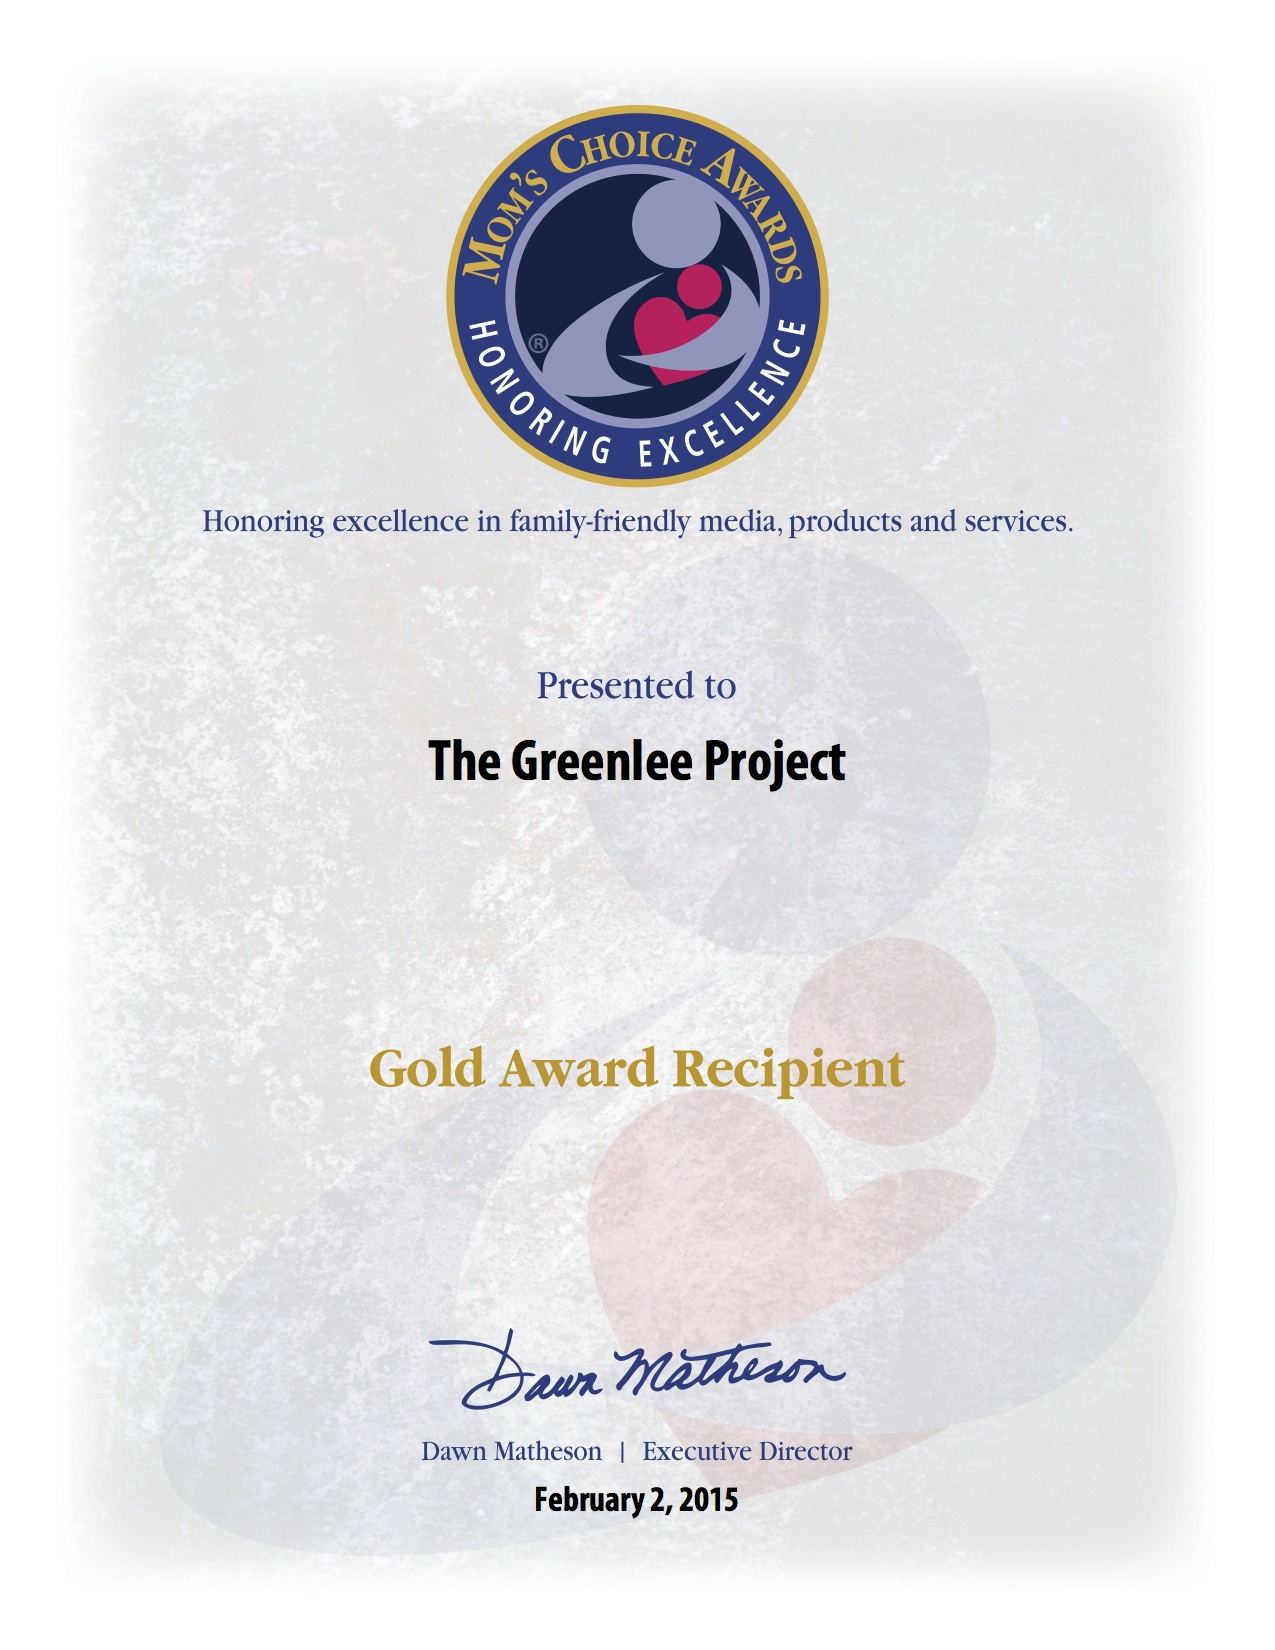 Mom's Choice Award 'The Greenlee Project'